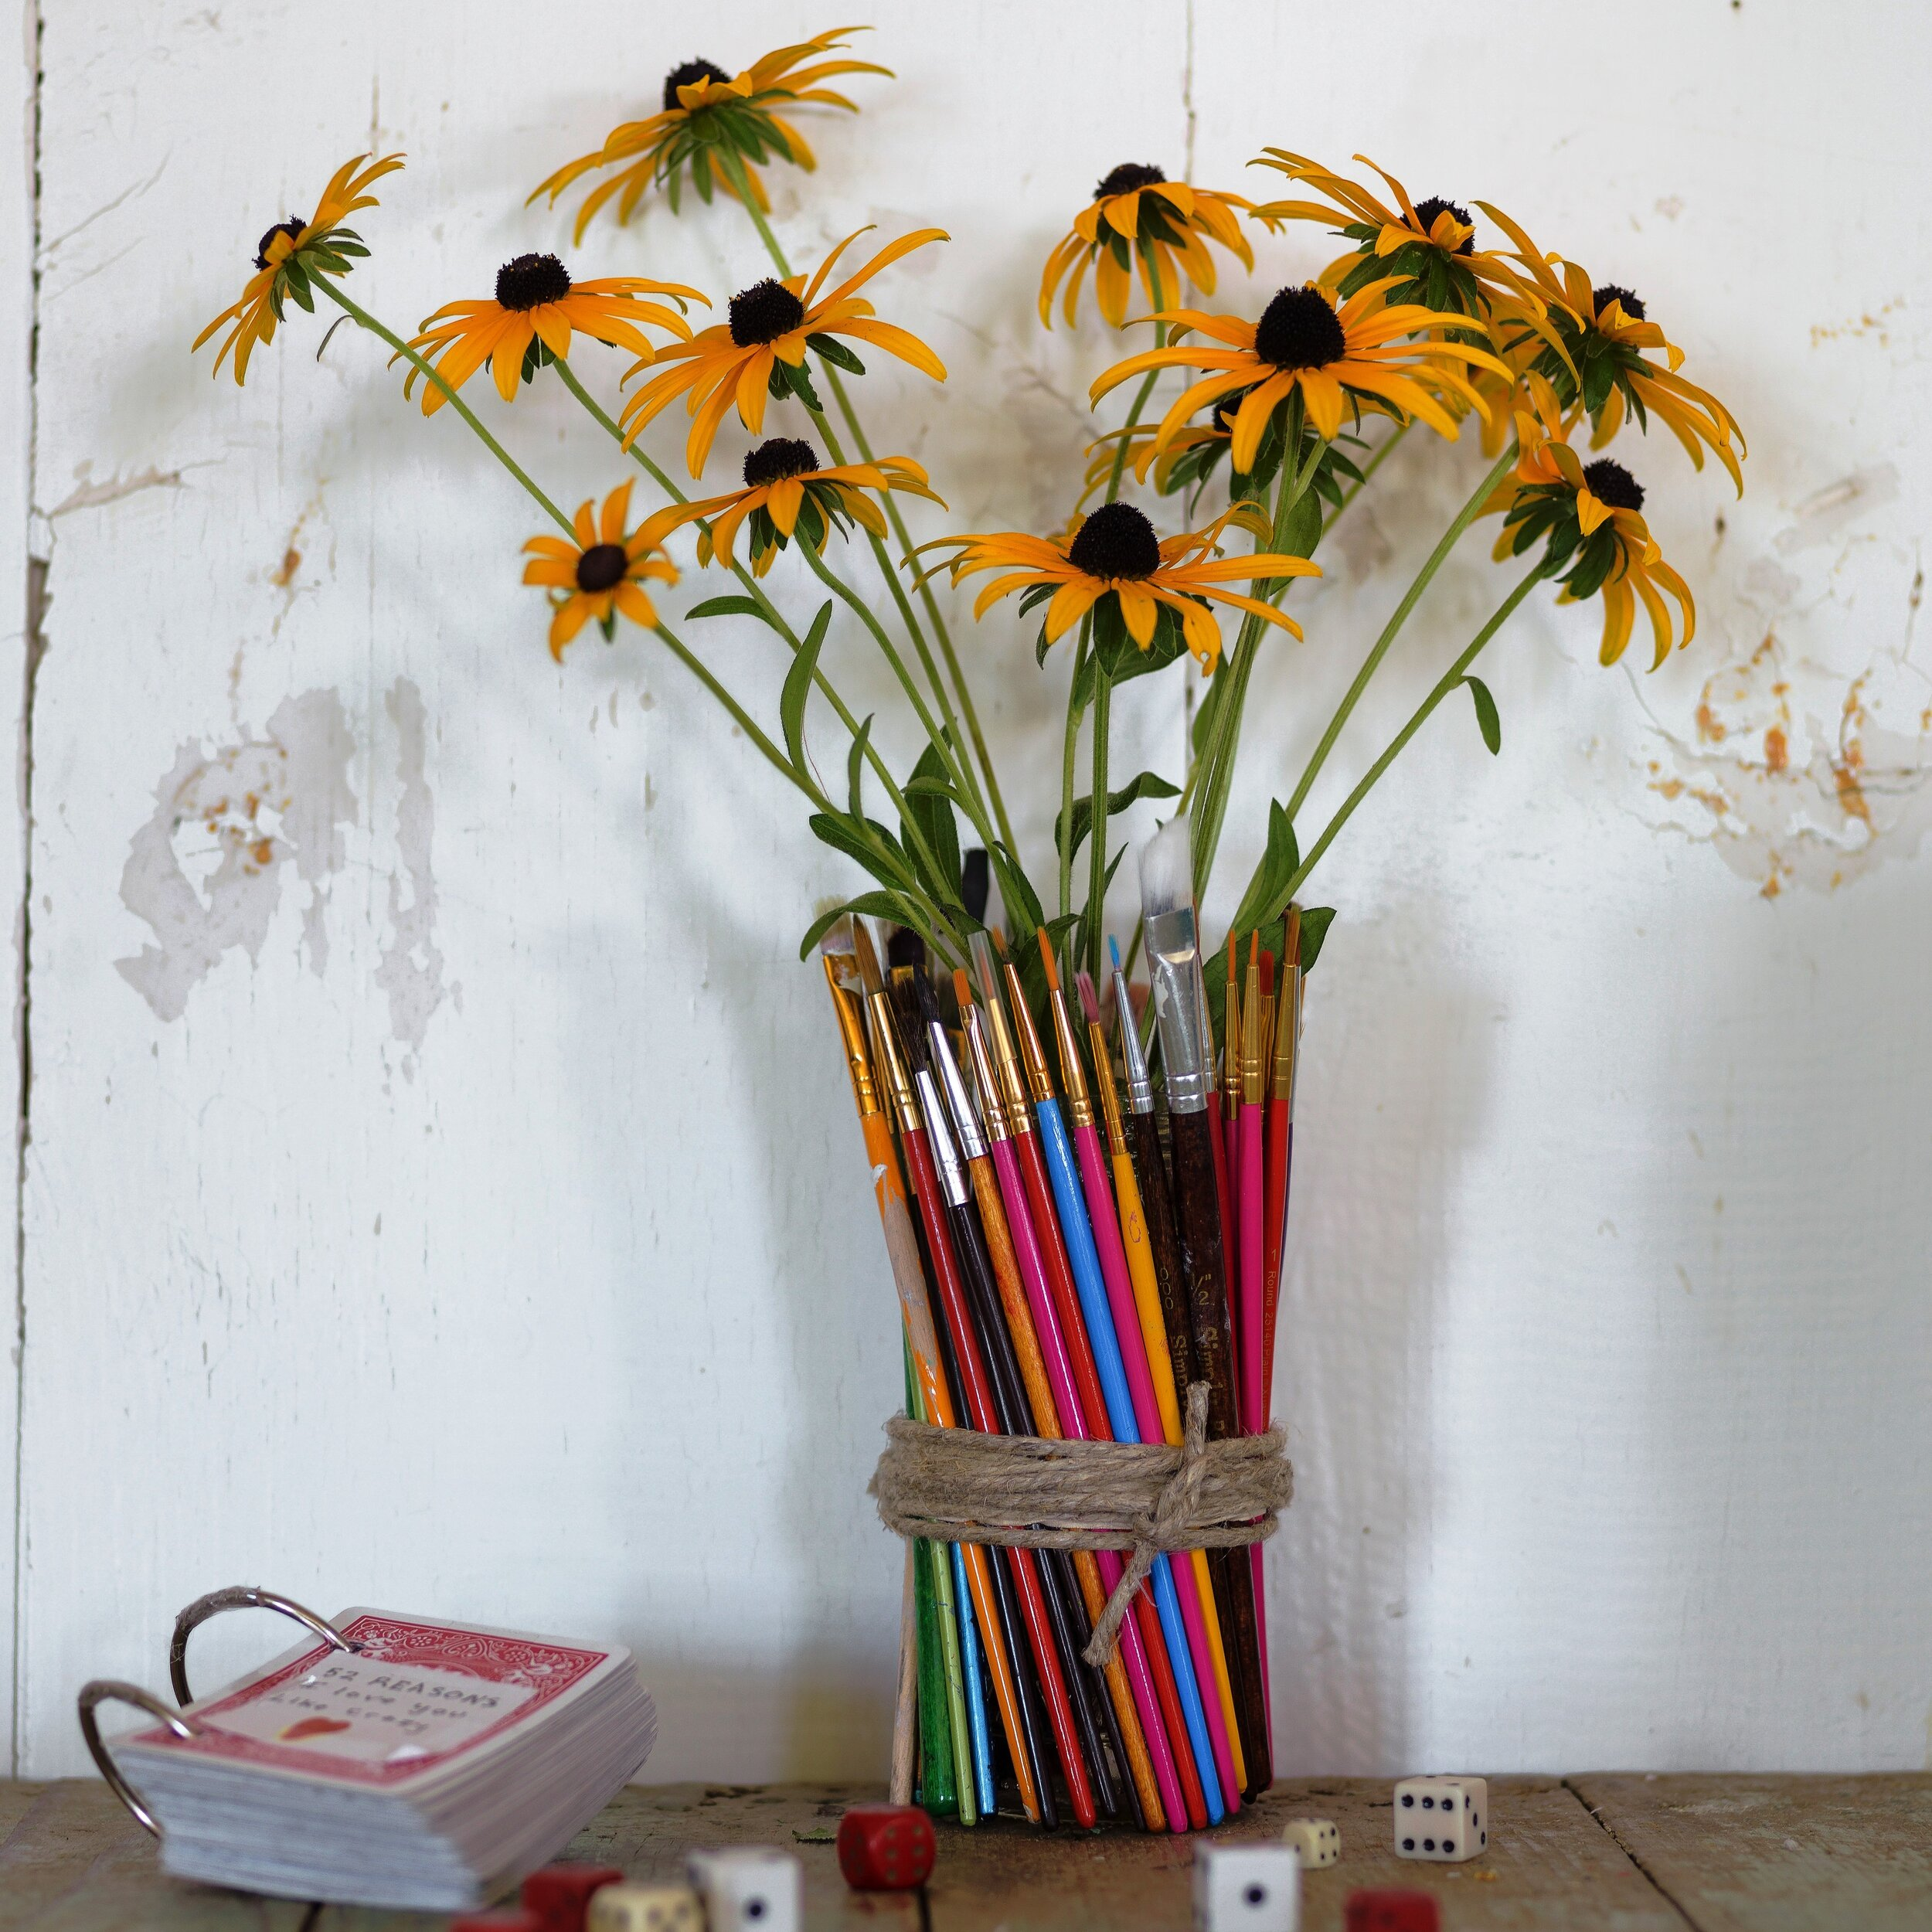 This DIY is featured in my book,  Salvage Secrets Design and Decor  (photo by  Susan Teare) . This easy to make used paintbrush vase has fabulous colors. Just wrap them around a recycled jar and add some twine. The perfect fall gift.